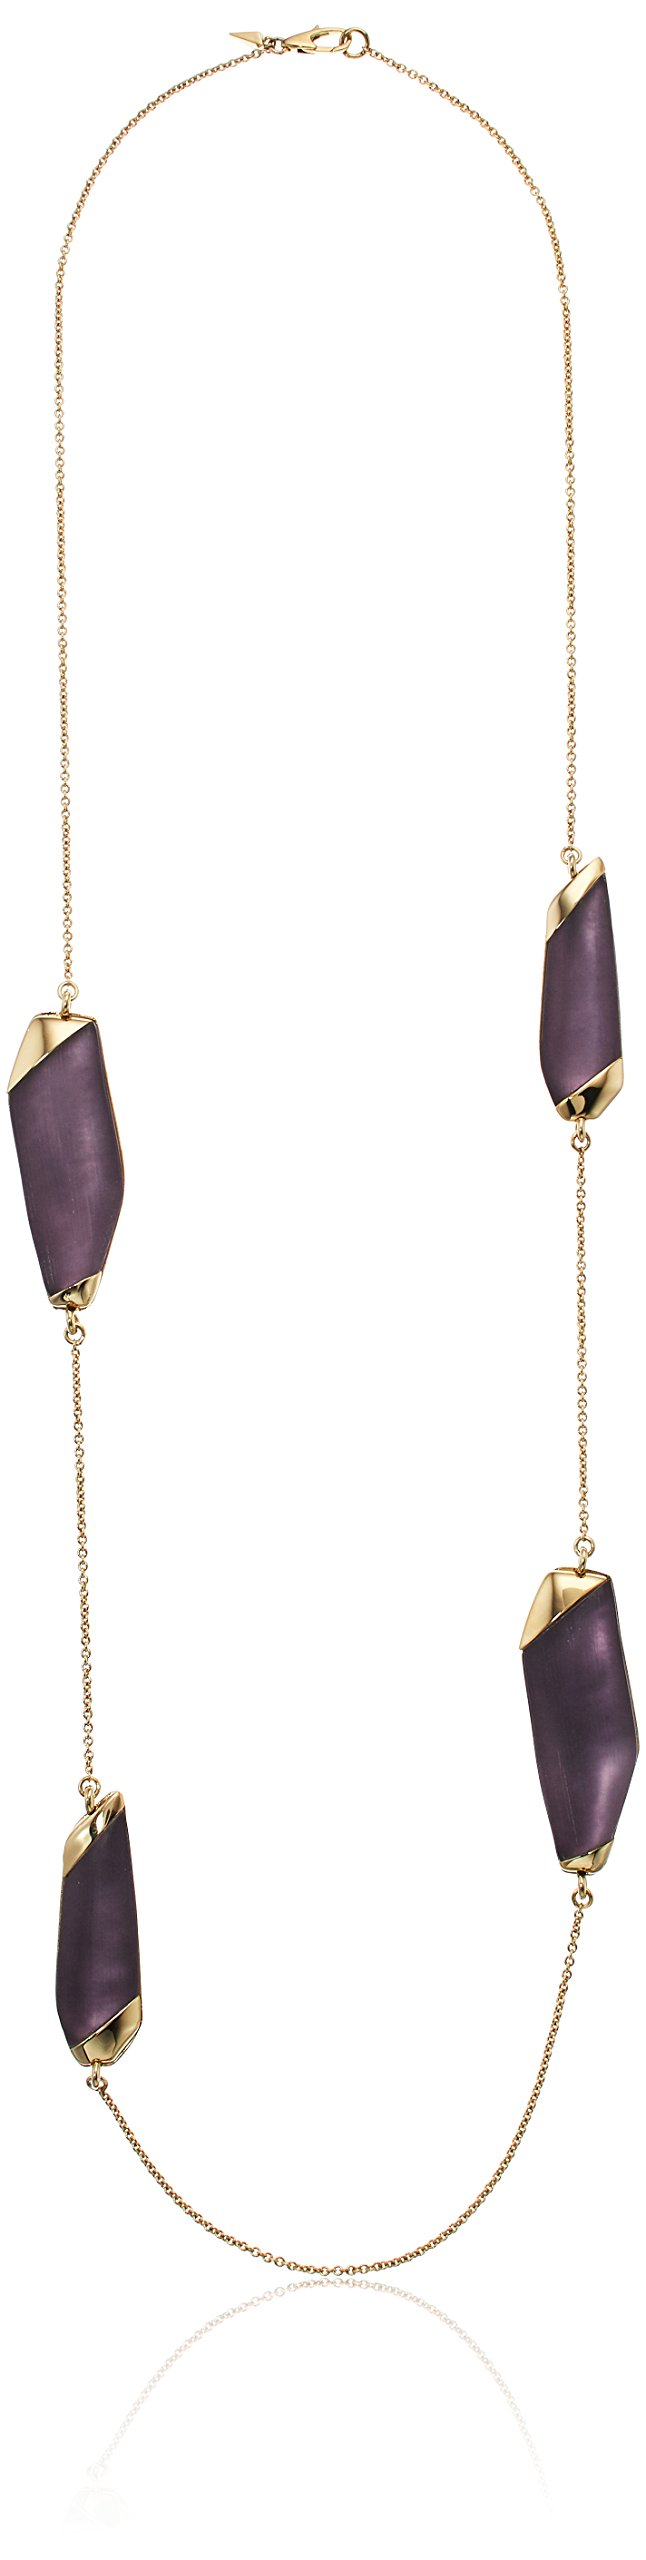 Alexis Bittar Lucite Station Deep Lilac Strand Necklace